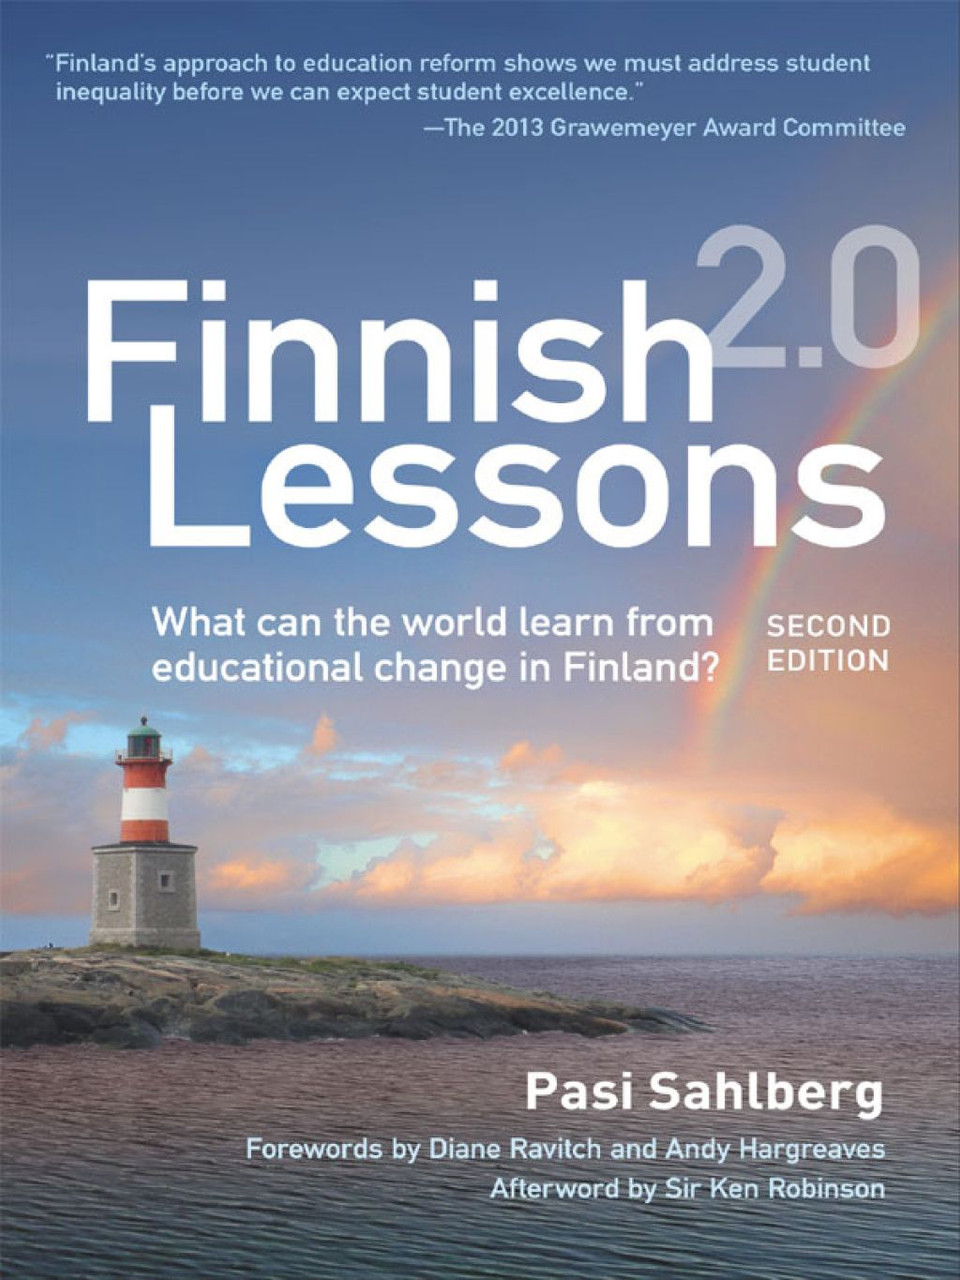 Finnish Lessons 2.0: What Can the World Learn From Educational Change in Finland? Second Edition